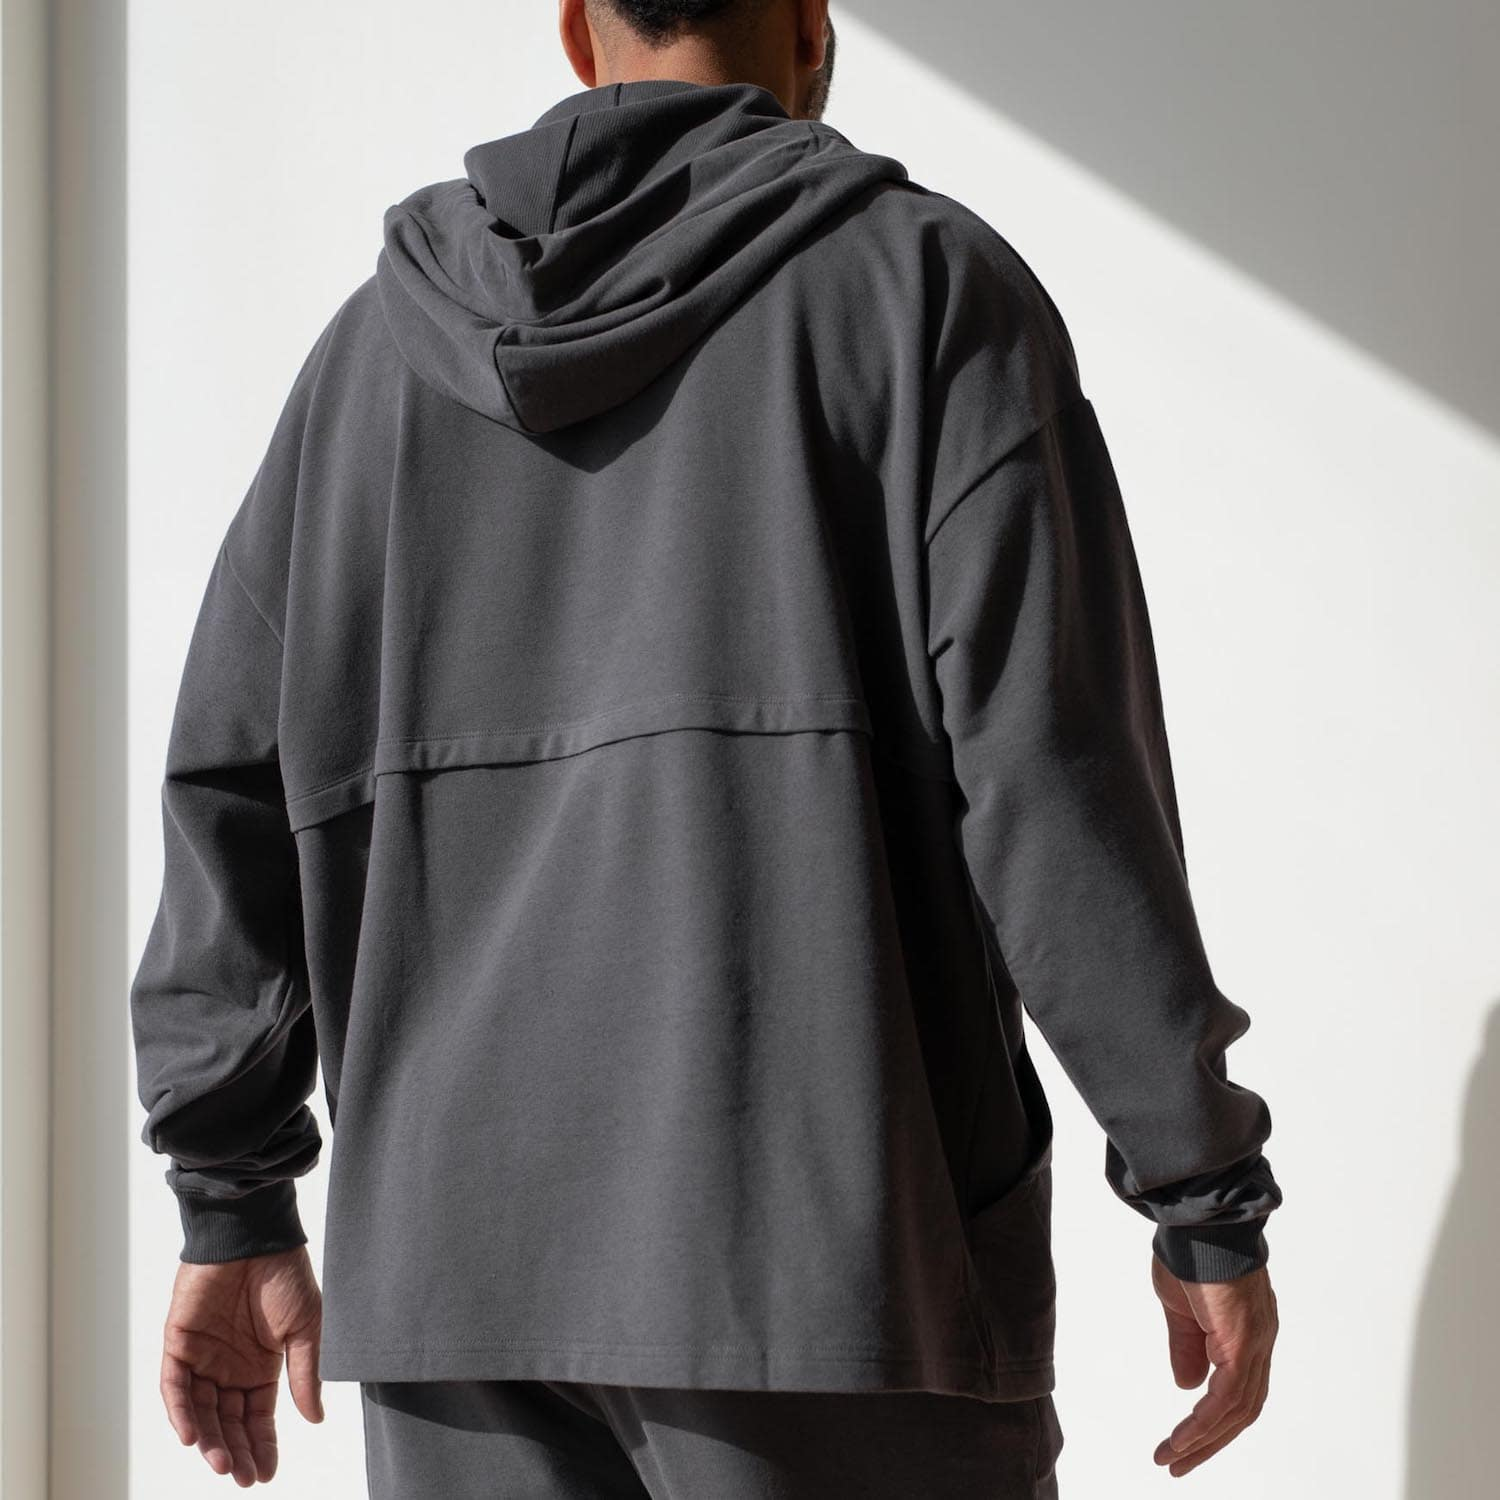 Lahgo Sleepwear Dreamy Wool Fleece Oversized Hoodie - #Eclipse